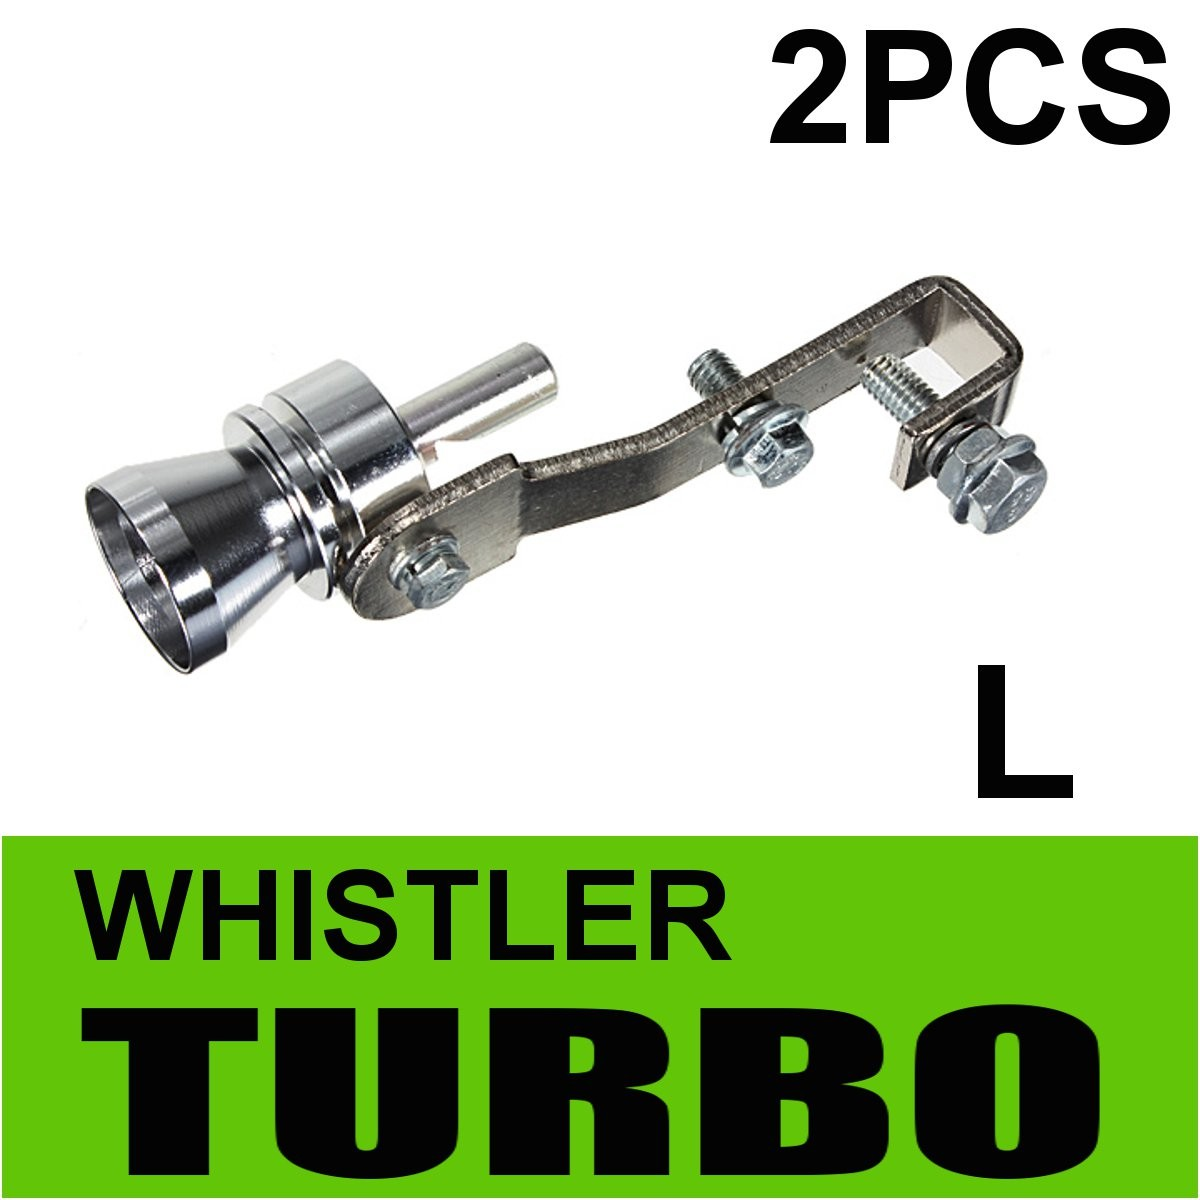 2Pcs Universal Car Fake Turbo Sound Simulator Whistler Muffler Exhaust Pipe Blow Off Valve Bov Simulator Size L2Pcs Universal Car Fake Turbo Sound Simulator Whistler Muffler Exhaust Pipe Blow Off Valve Bov Simulator Size L